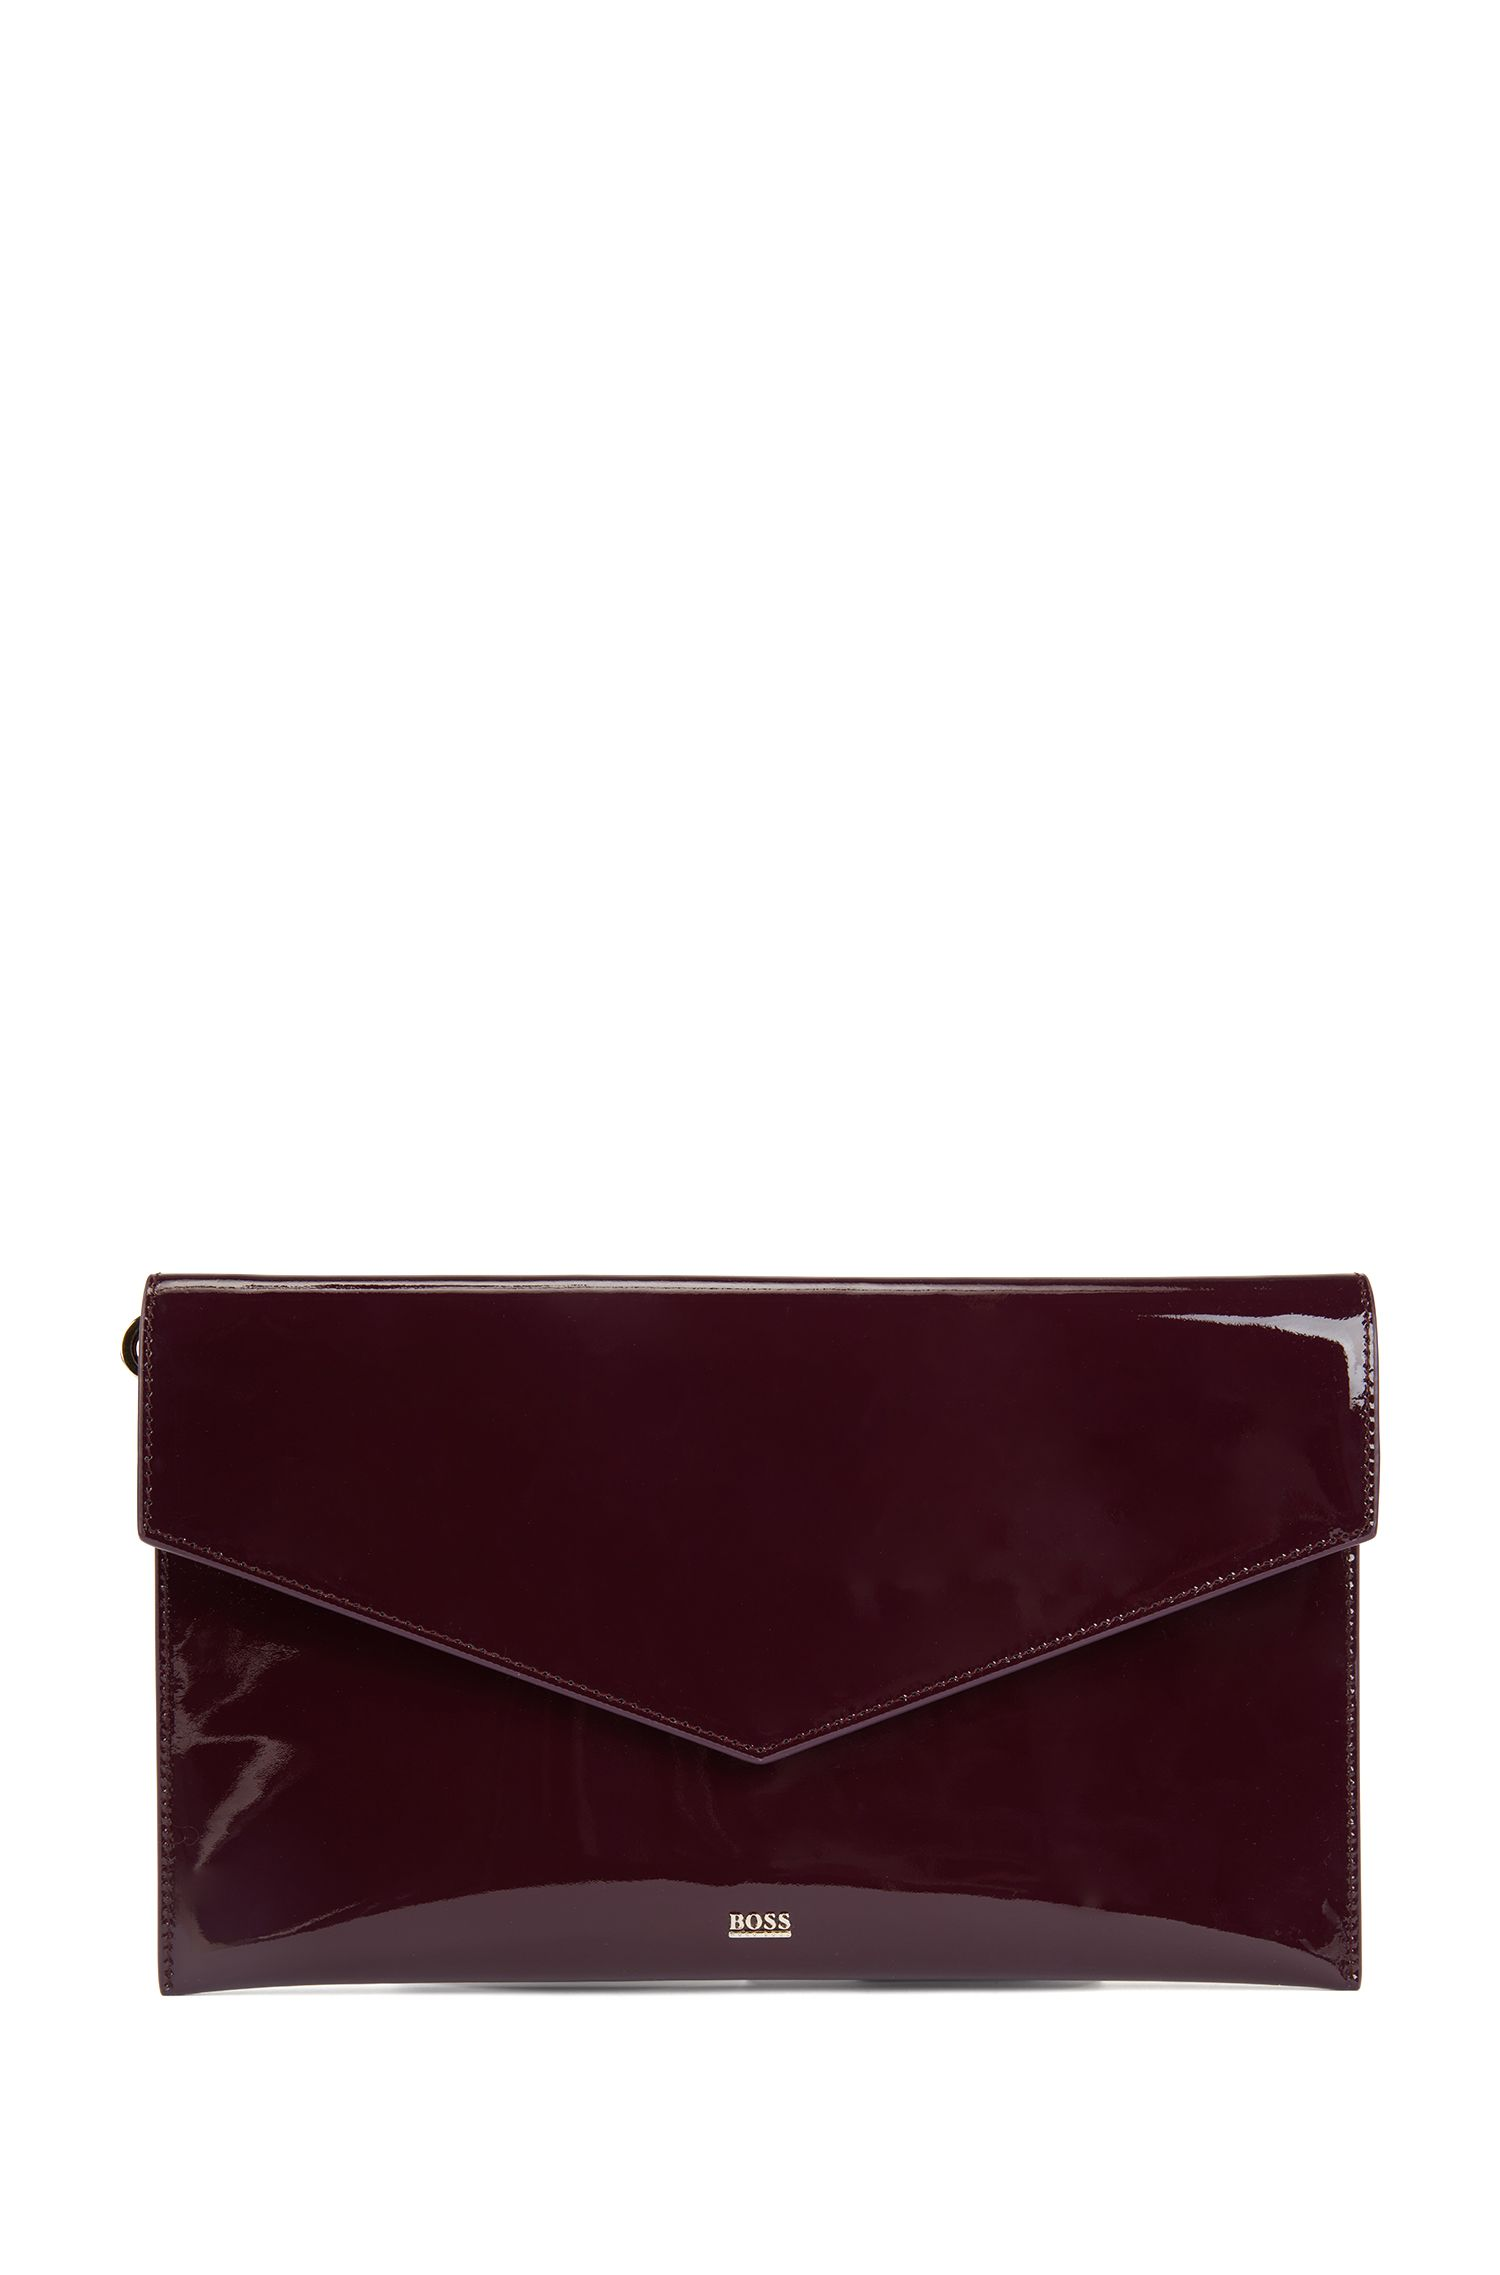 Clutch handbag in patent calf leather with metallic lettering, Dark pink